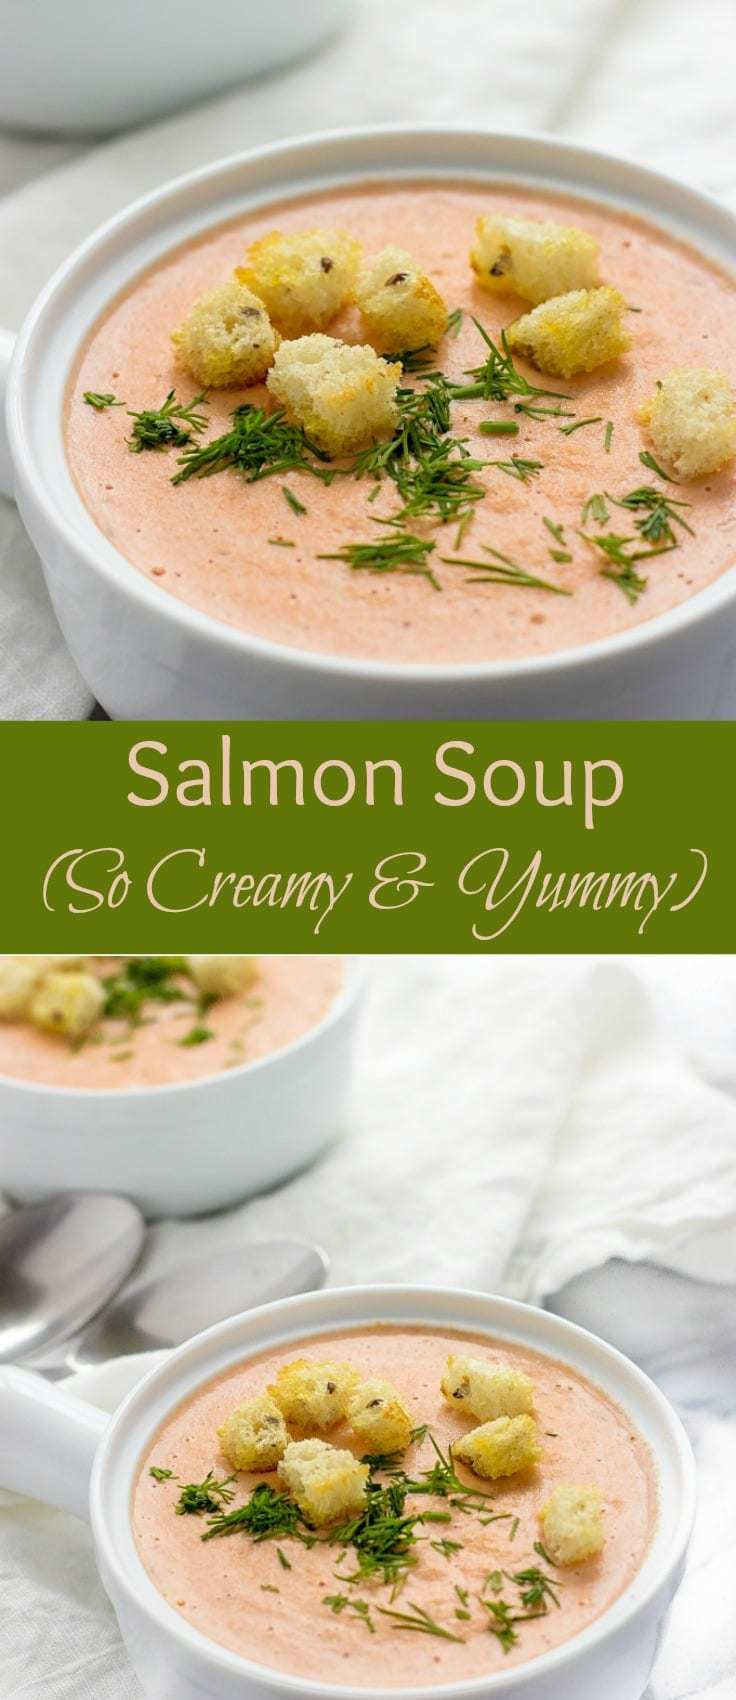 Salmon Soup Recipes | Healthy Salmon Soup Recipe For Dinner | Salmon Soup | Easy Salmon Soup